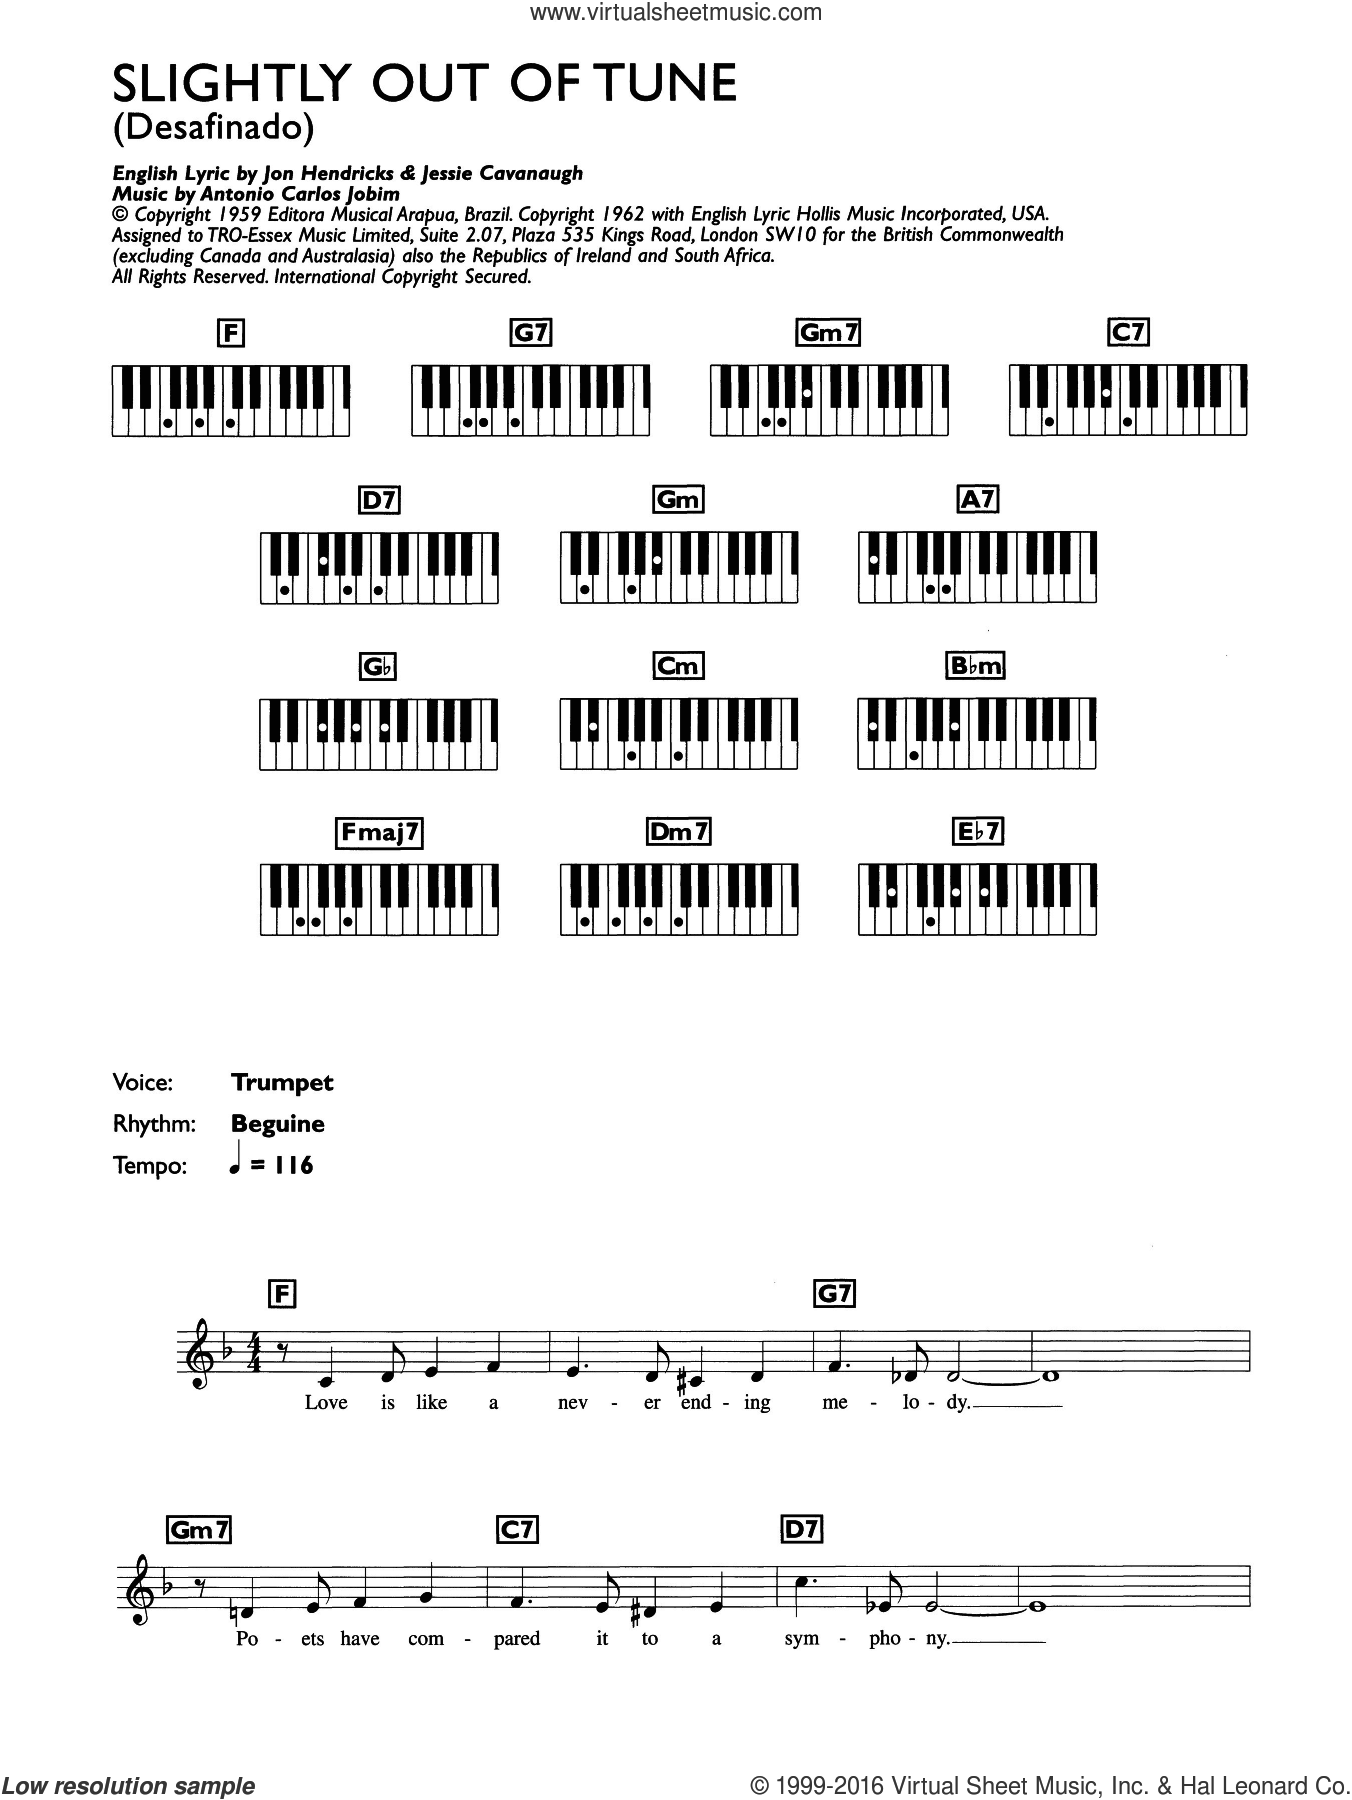 Desafinado (Slightly Out Of Tune) sheet music for piano solo (chords, lyrics, melody) by Antonio Carlos Jobim and Jon Hendricks, intermediate piano (chords, lyrics, melody). Score Image Preview.